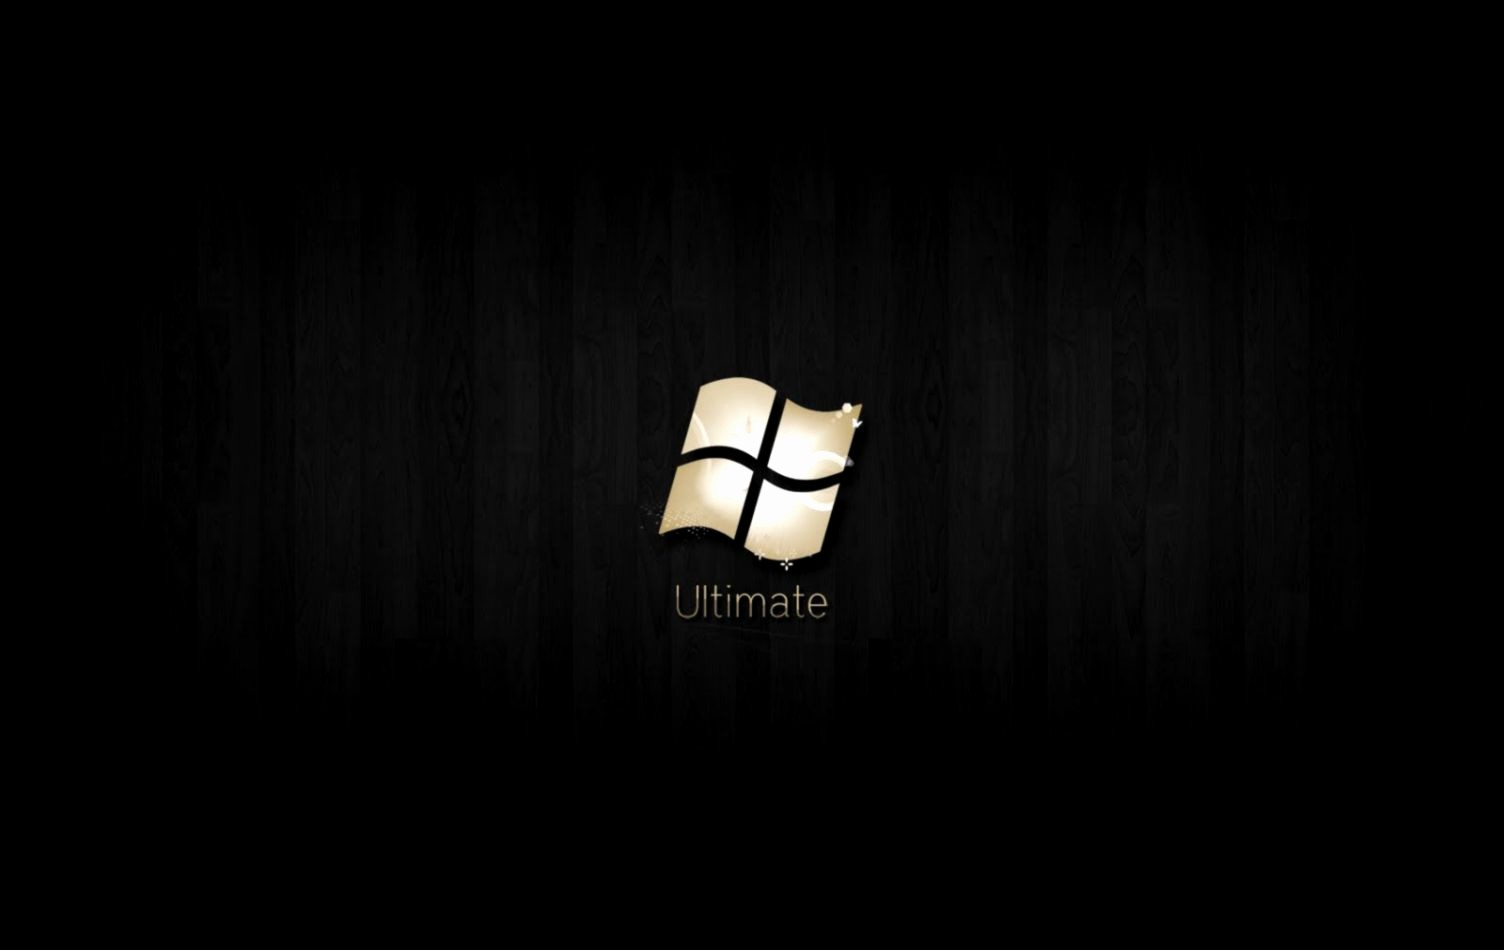 Avery 8875 Business Cards Templates Lovely Black Windows 7 Ultimate Wallpaper 28 Images Windows 7